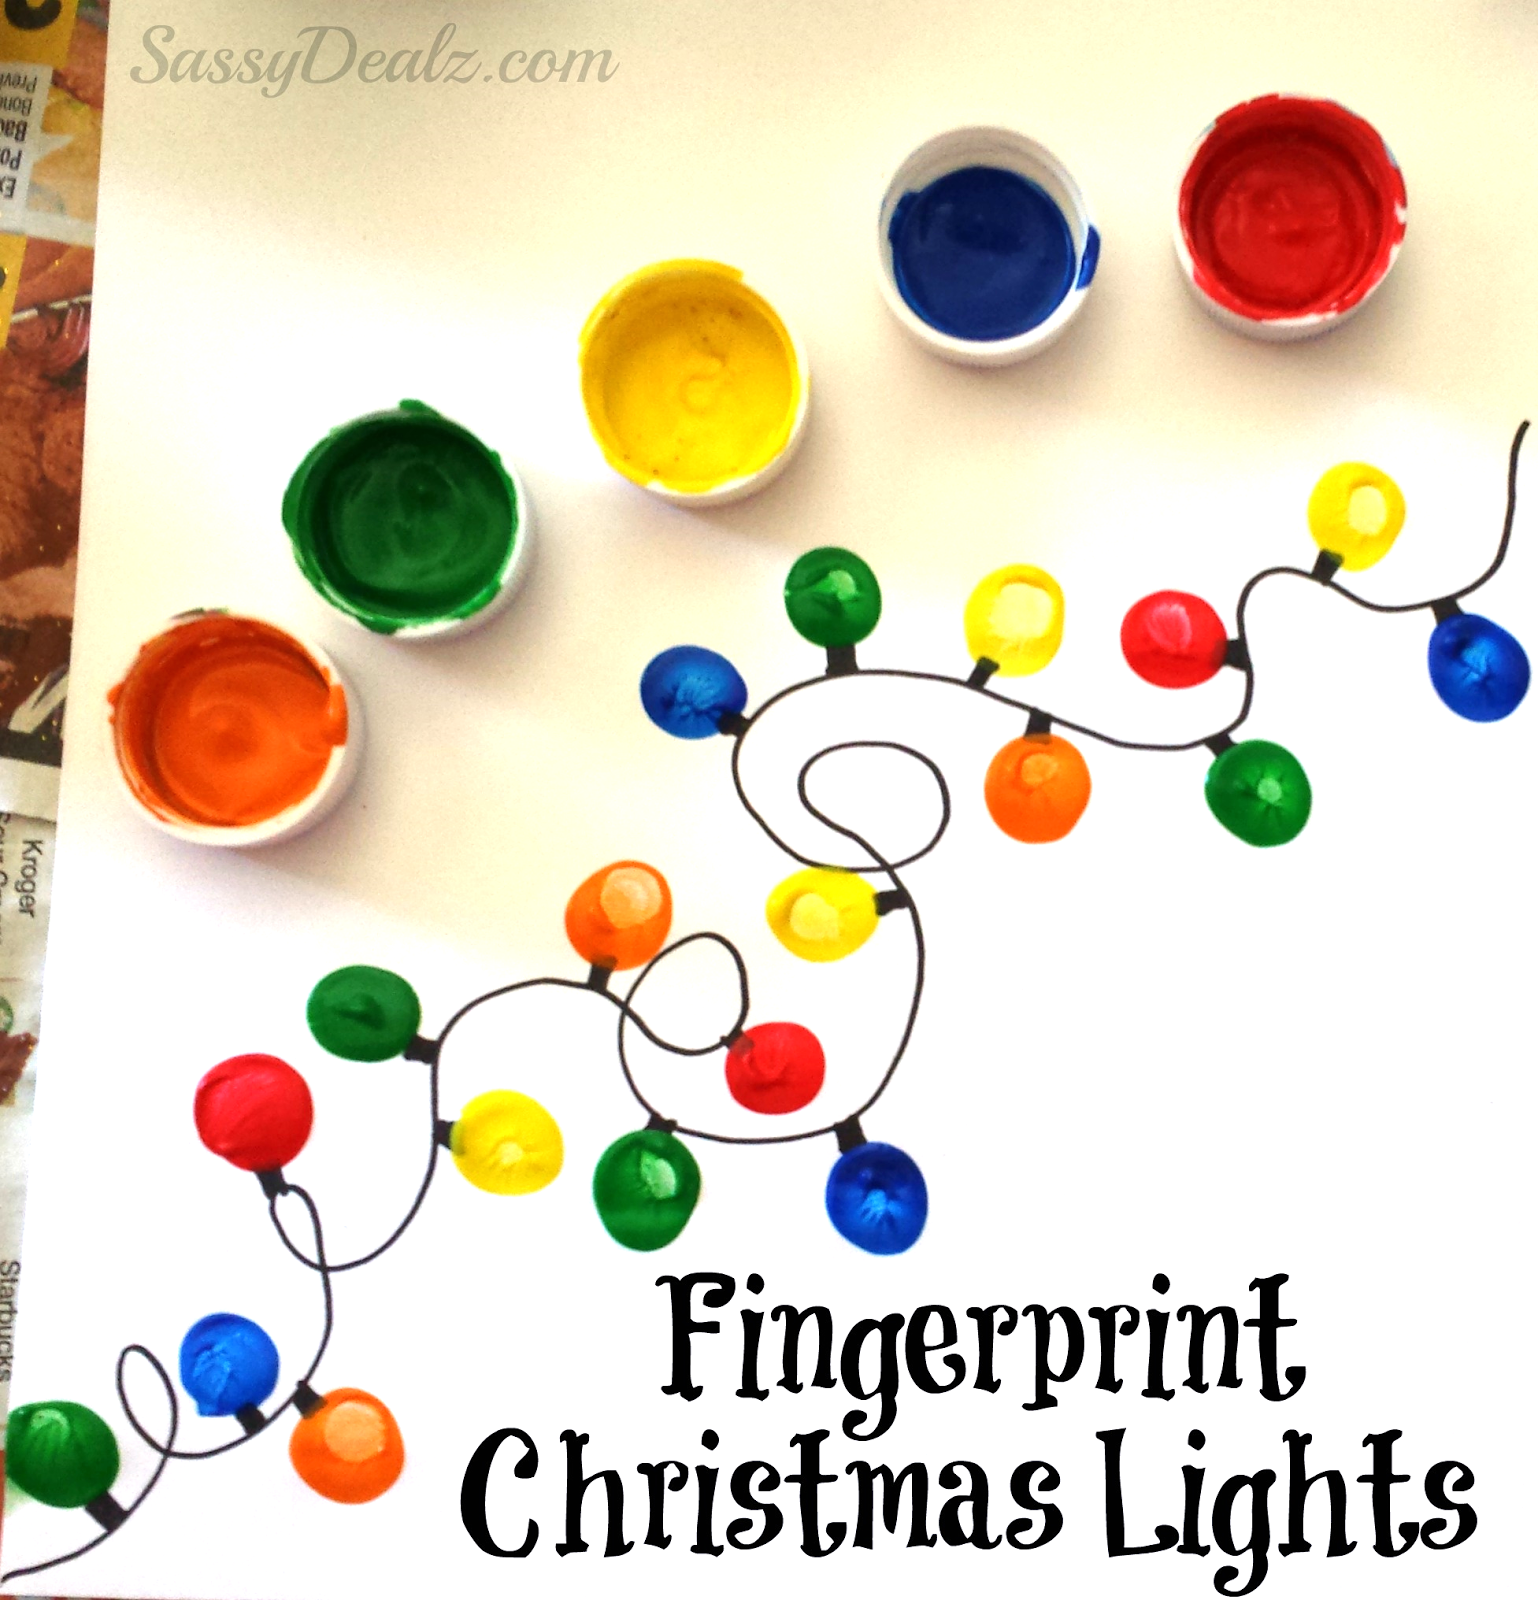 Fingerprint christmas lights craft